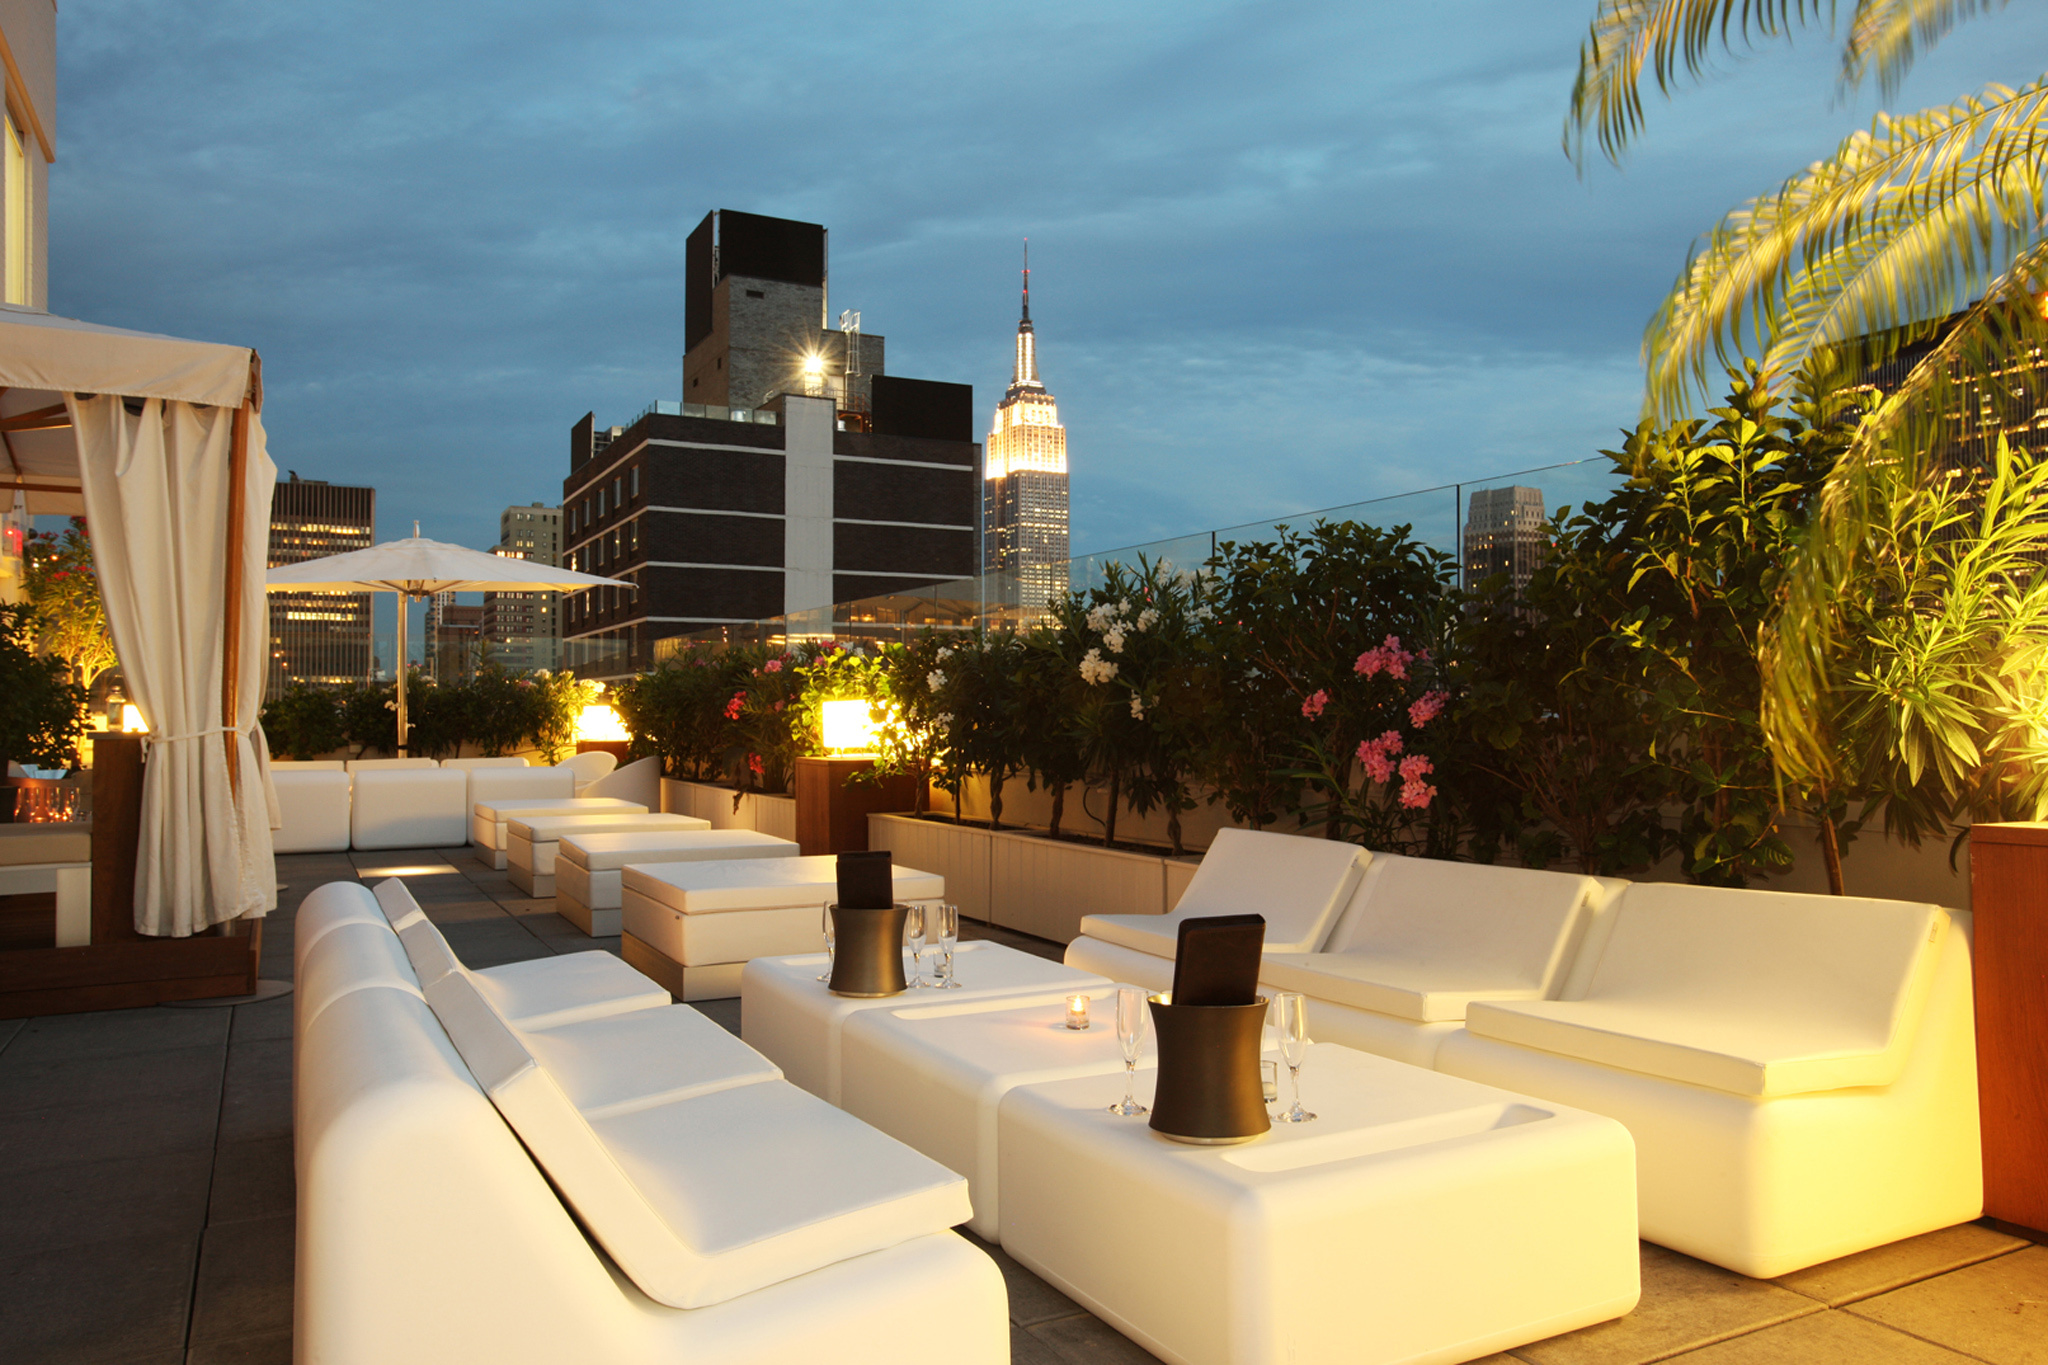 The best rooftop happy hours in NYC